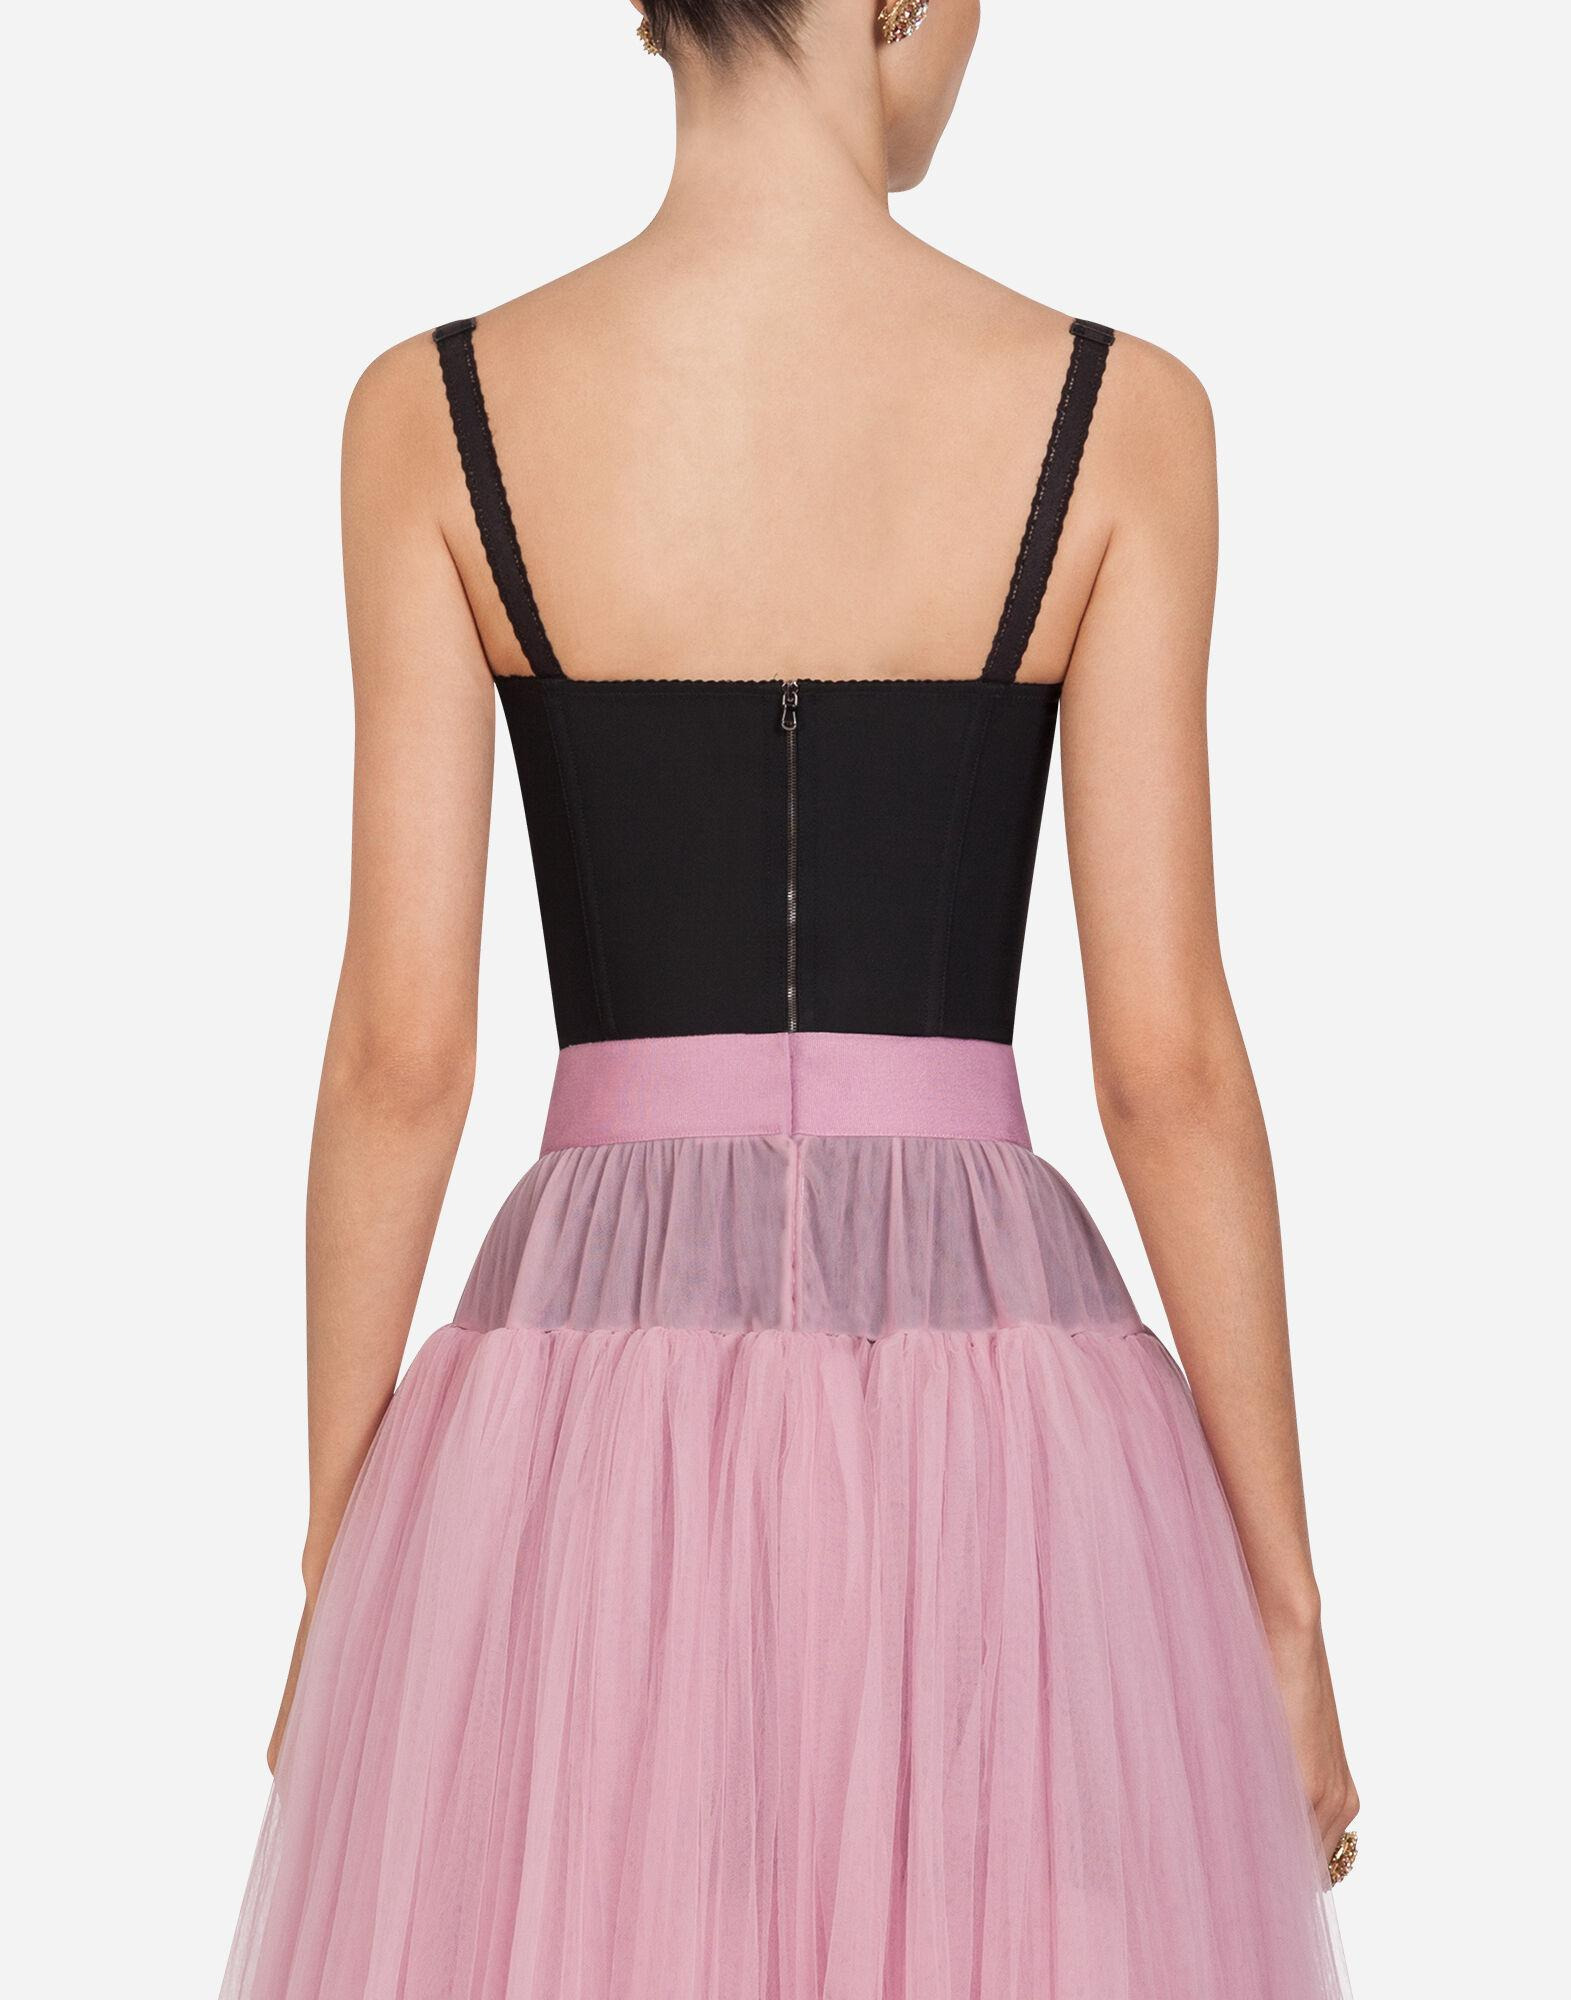 Corset style bustier 1